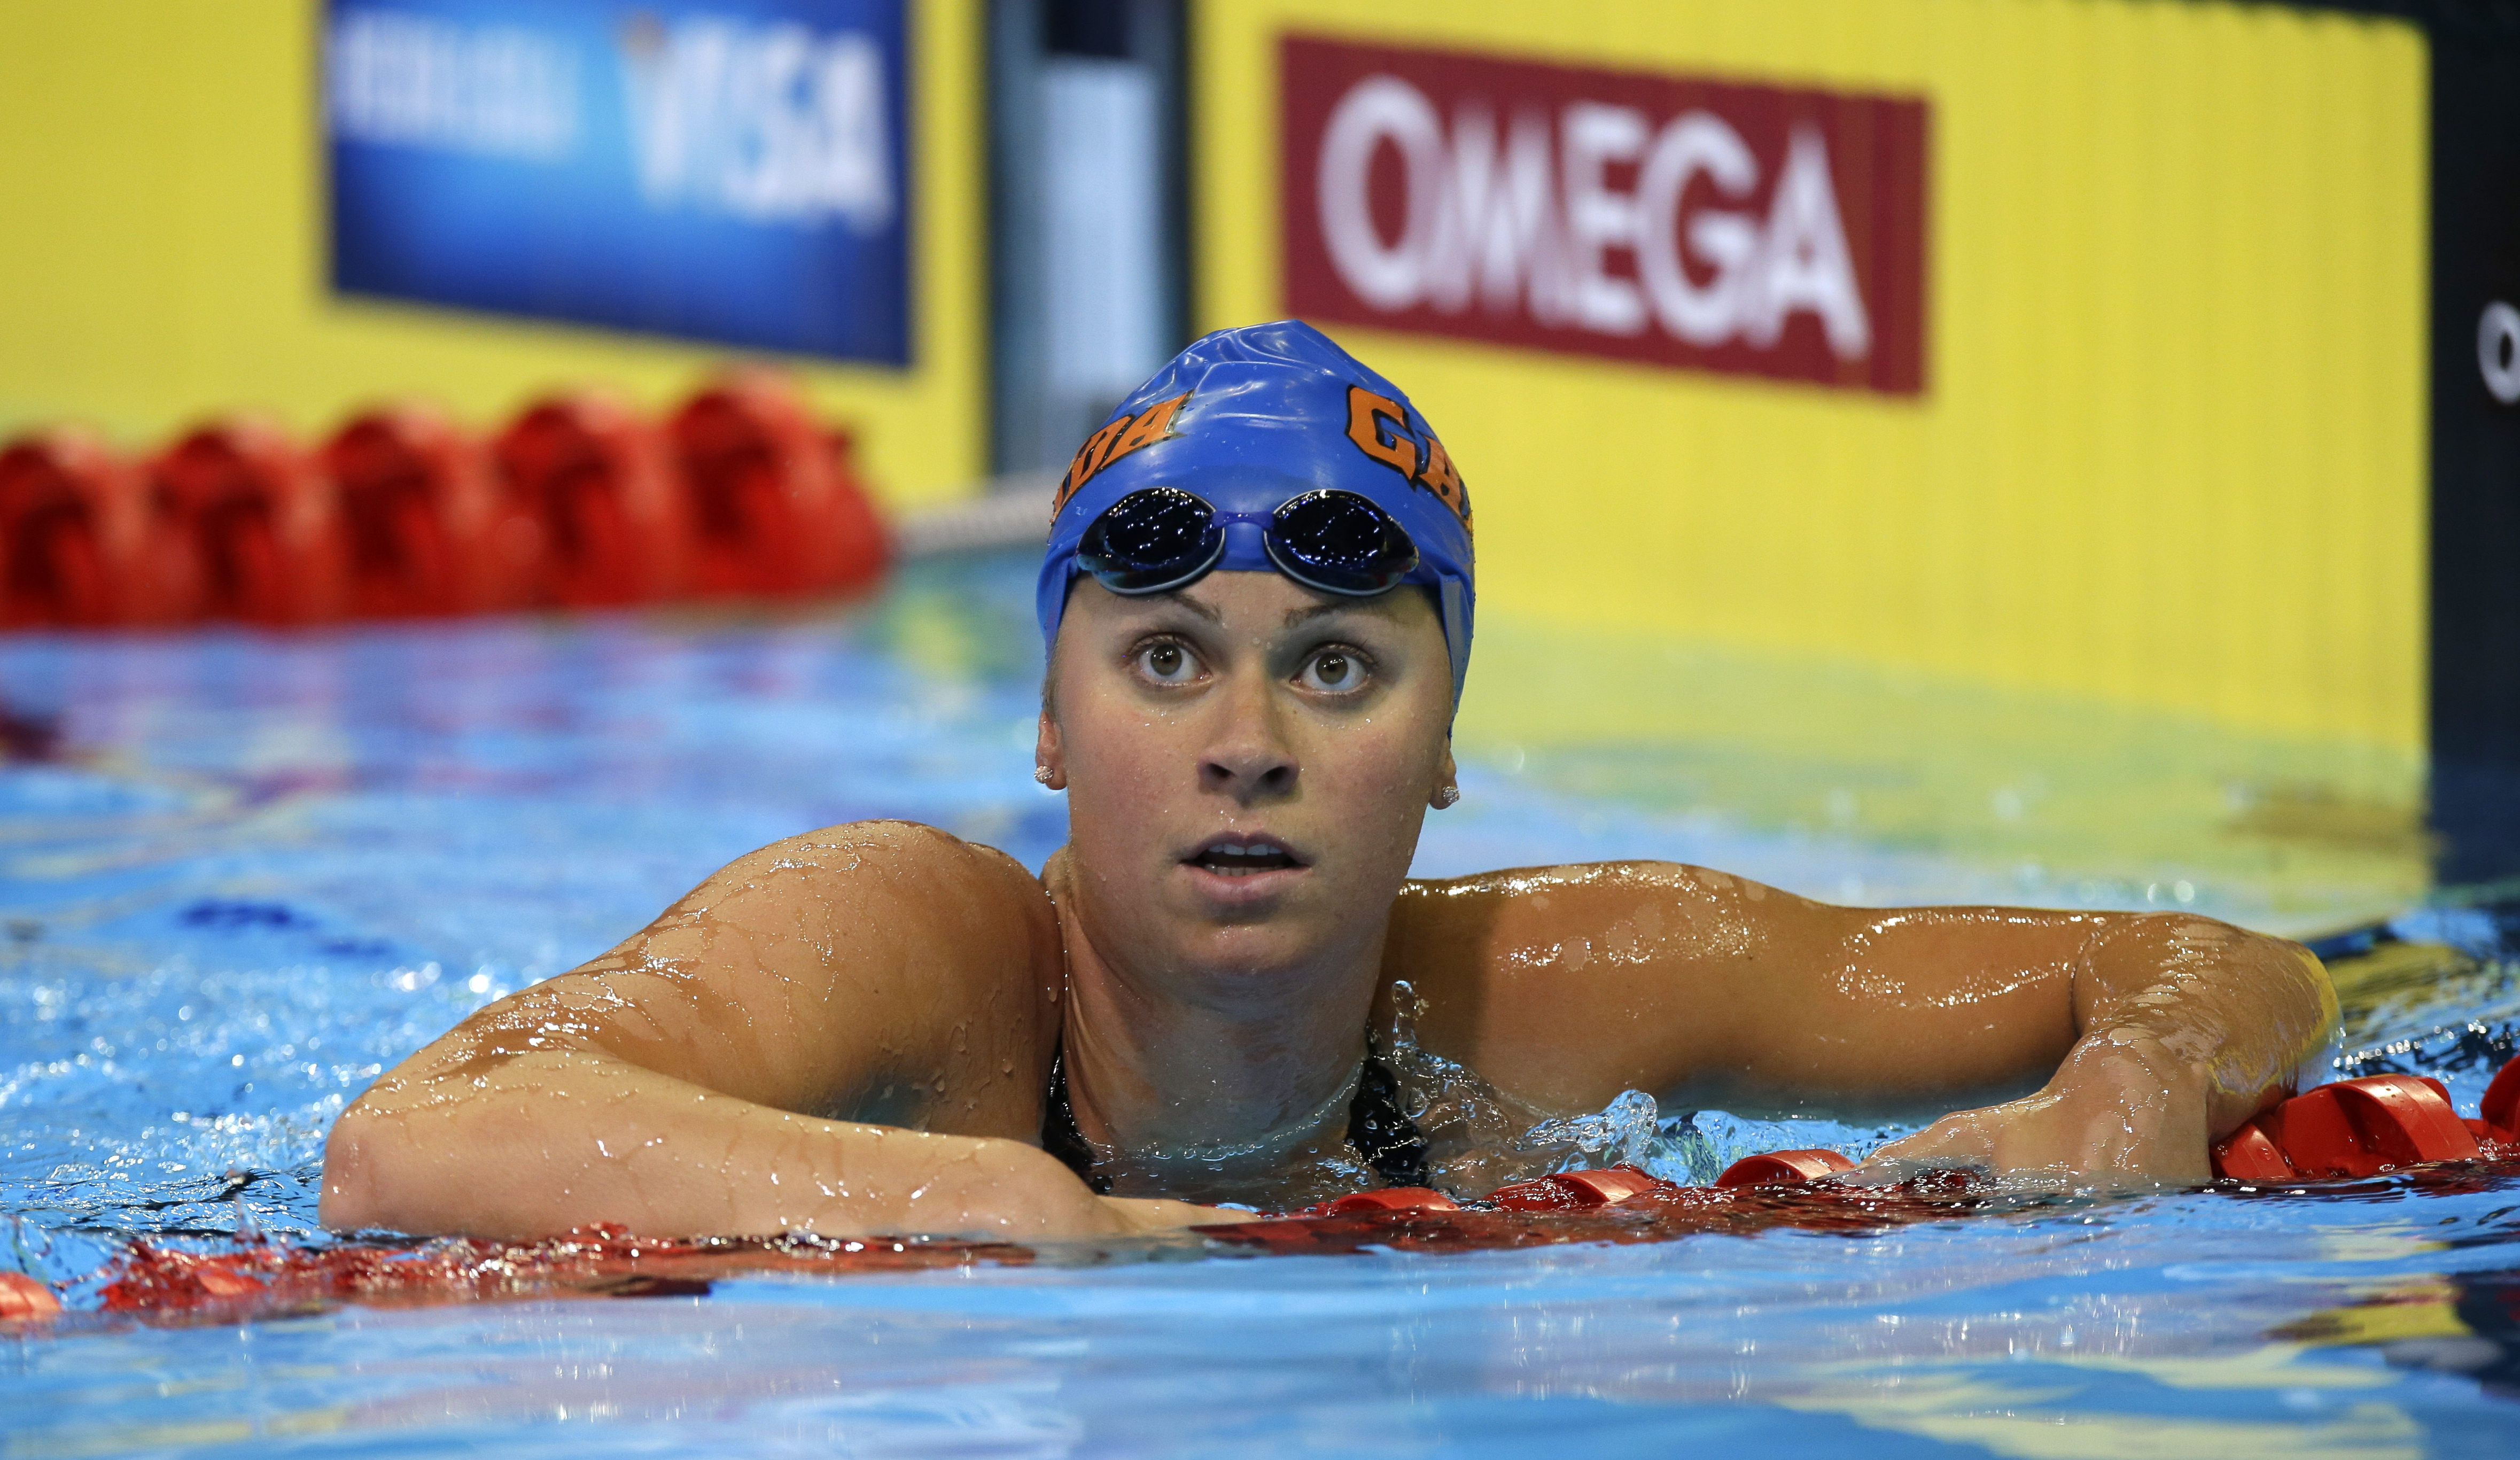 FILE -  In this Wednesday, June 27, 2012 file photo, Elizabeth Beisel swims in the women's 200-meter individual medley preliminaries at the U.S. Olympic swimming trials in Omaha, Neb. Matt Grevers and Elizabeth Beisel have been through this before. But th